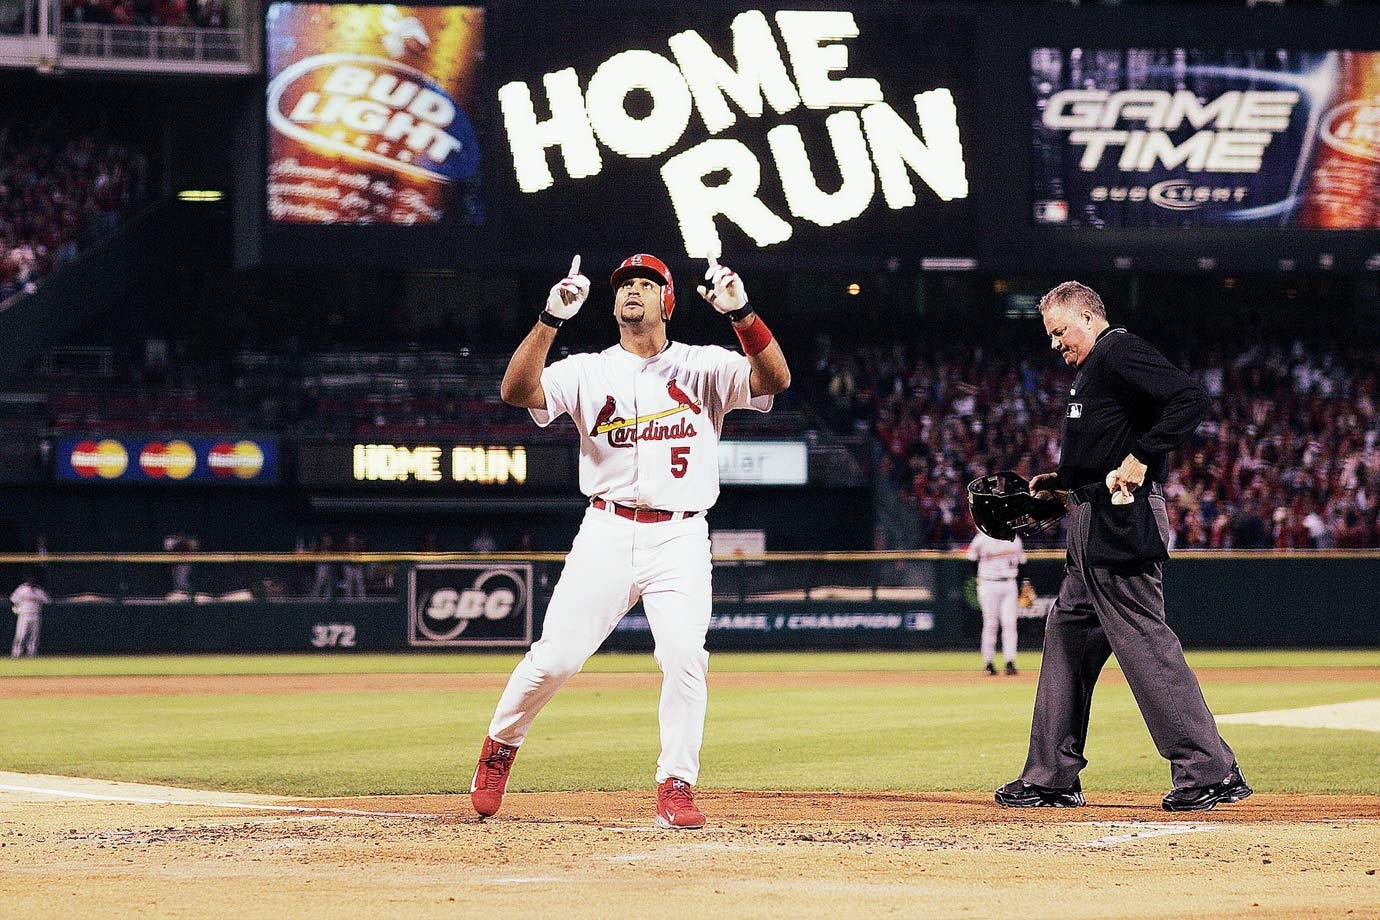 The first round of the 1999 MLB Draft may have produced stars such as Josh Hamilton and Josh Beckett, but the Cardinals undoubtedly made the best pick that year by choosing Albert Pujols in the 13th round. Through 11 seasons in St. Louis, the nine-time All-Star, 2001 NL Rookie of the Year and three-time NL MVP maintained a .328 batting average, .420 on-base percentage, averaged over 40 home runs and 120 RBI per season. Though his numbers declined after he signed with the Angels in 2012, Pujols still belted 40 homers in 2015 and was named an All-Star.